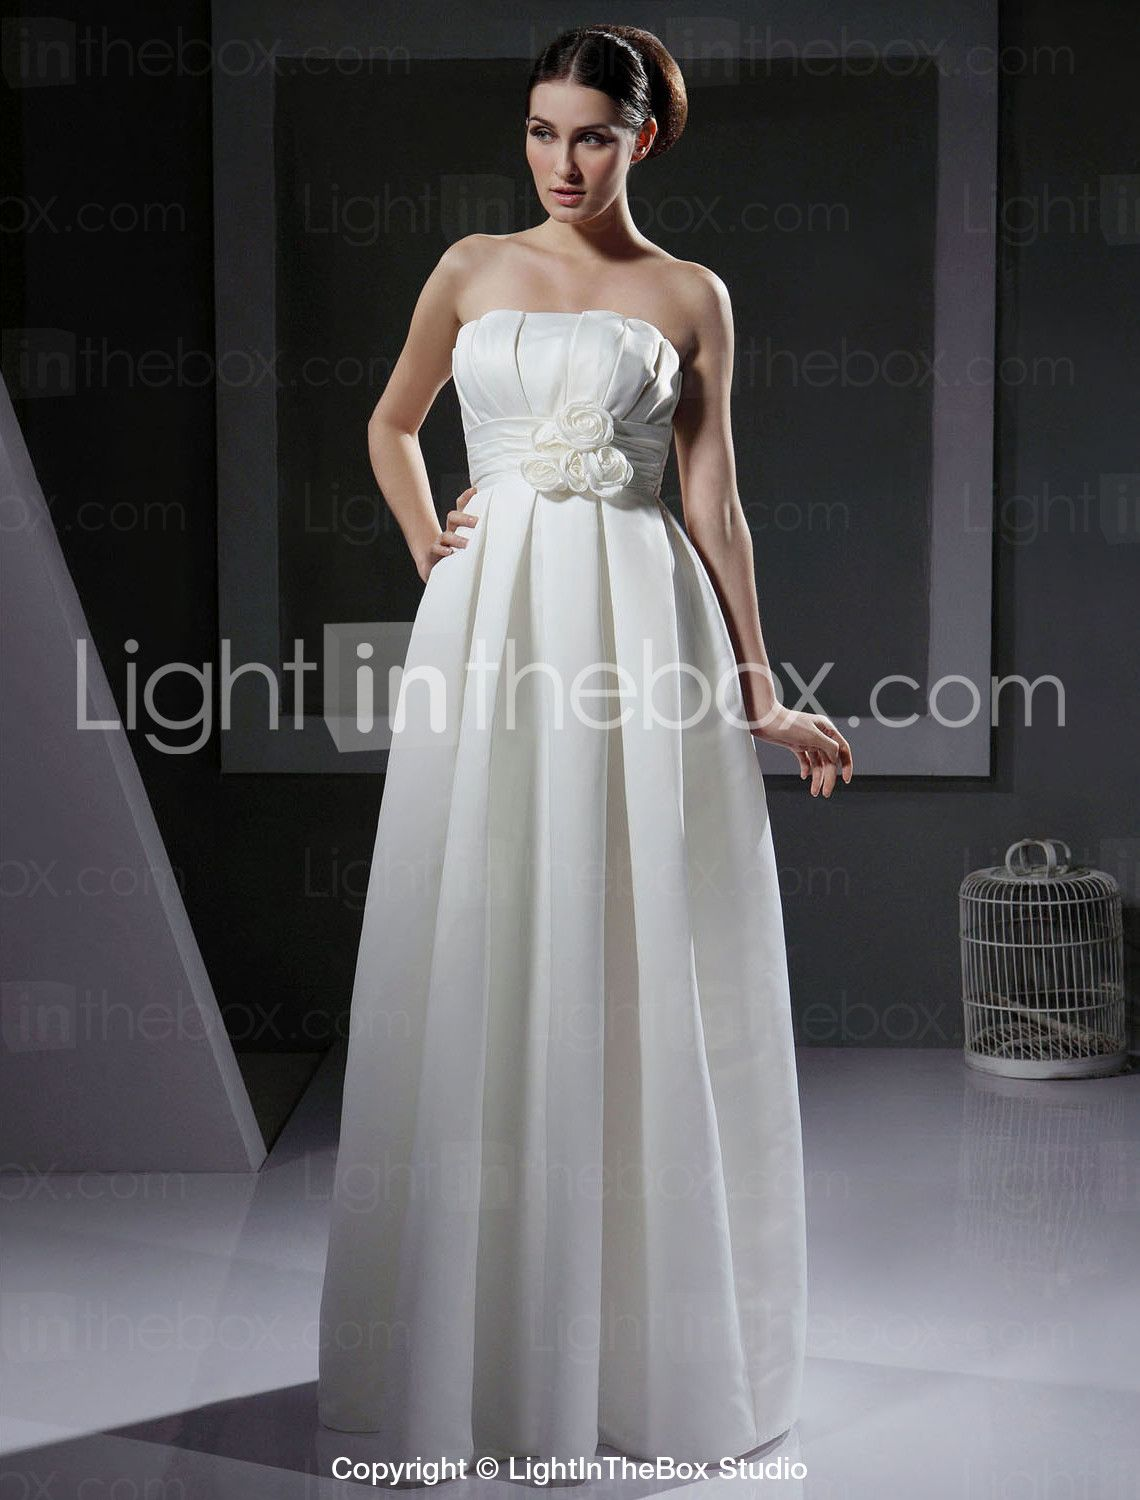 Lightinthebox wedding dresses  Aline Strapless Floorlength Satin Wedding Dress  uac  Light